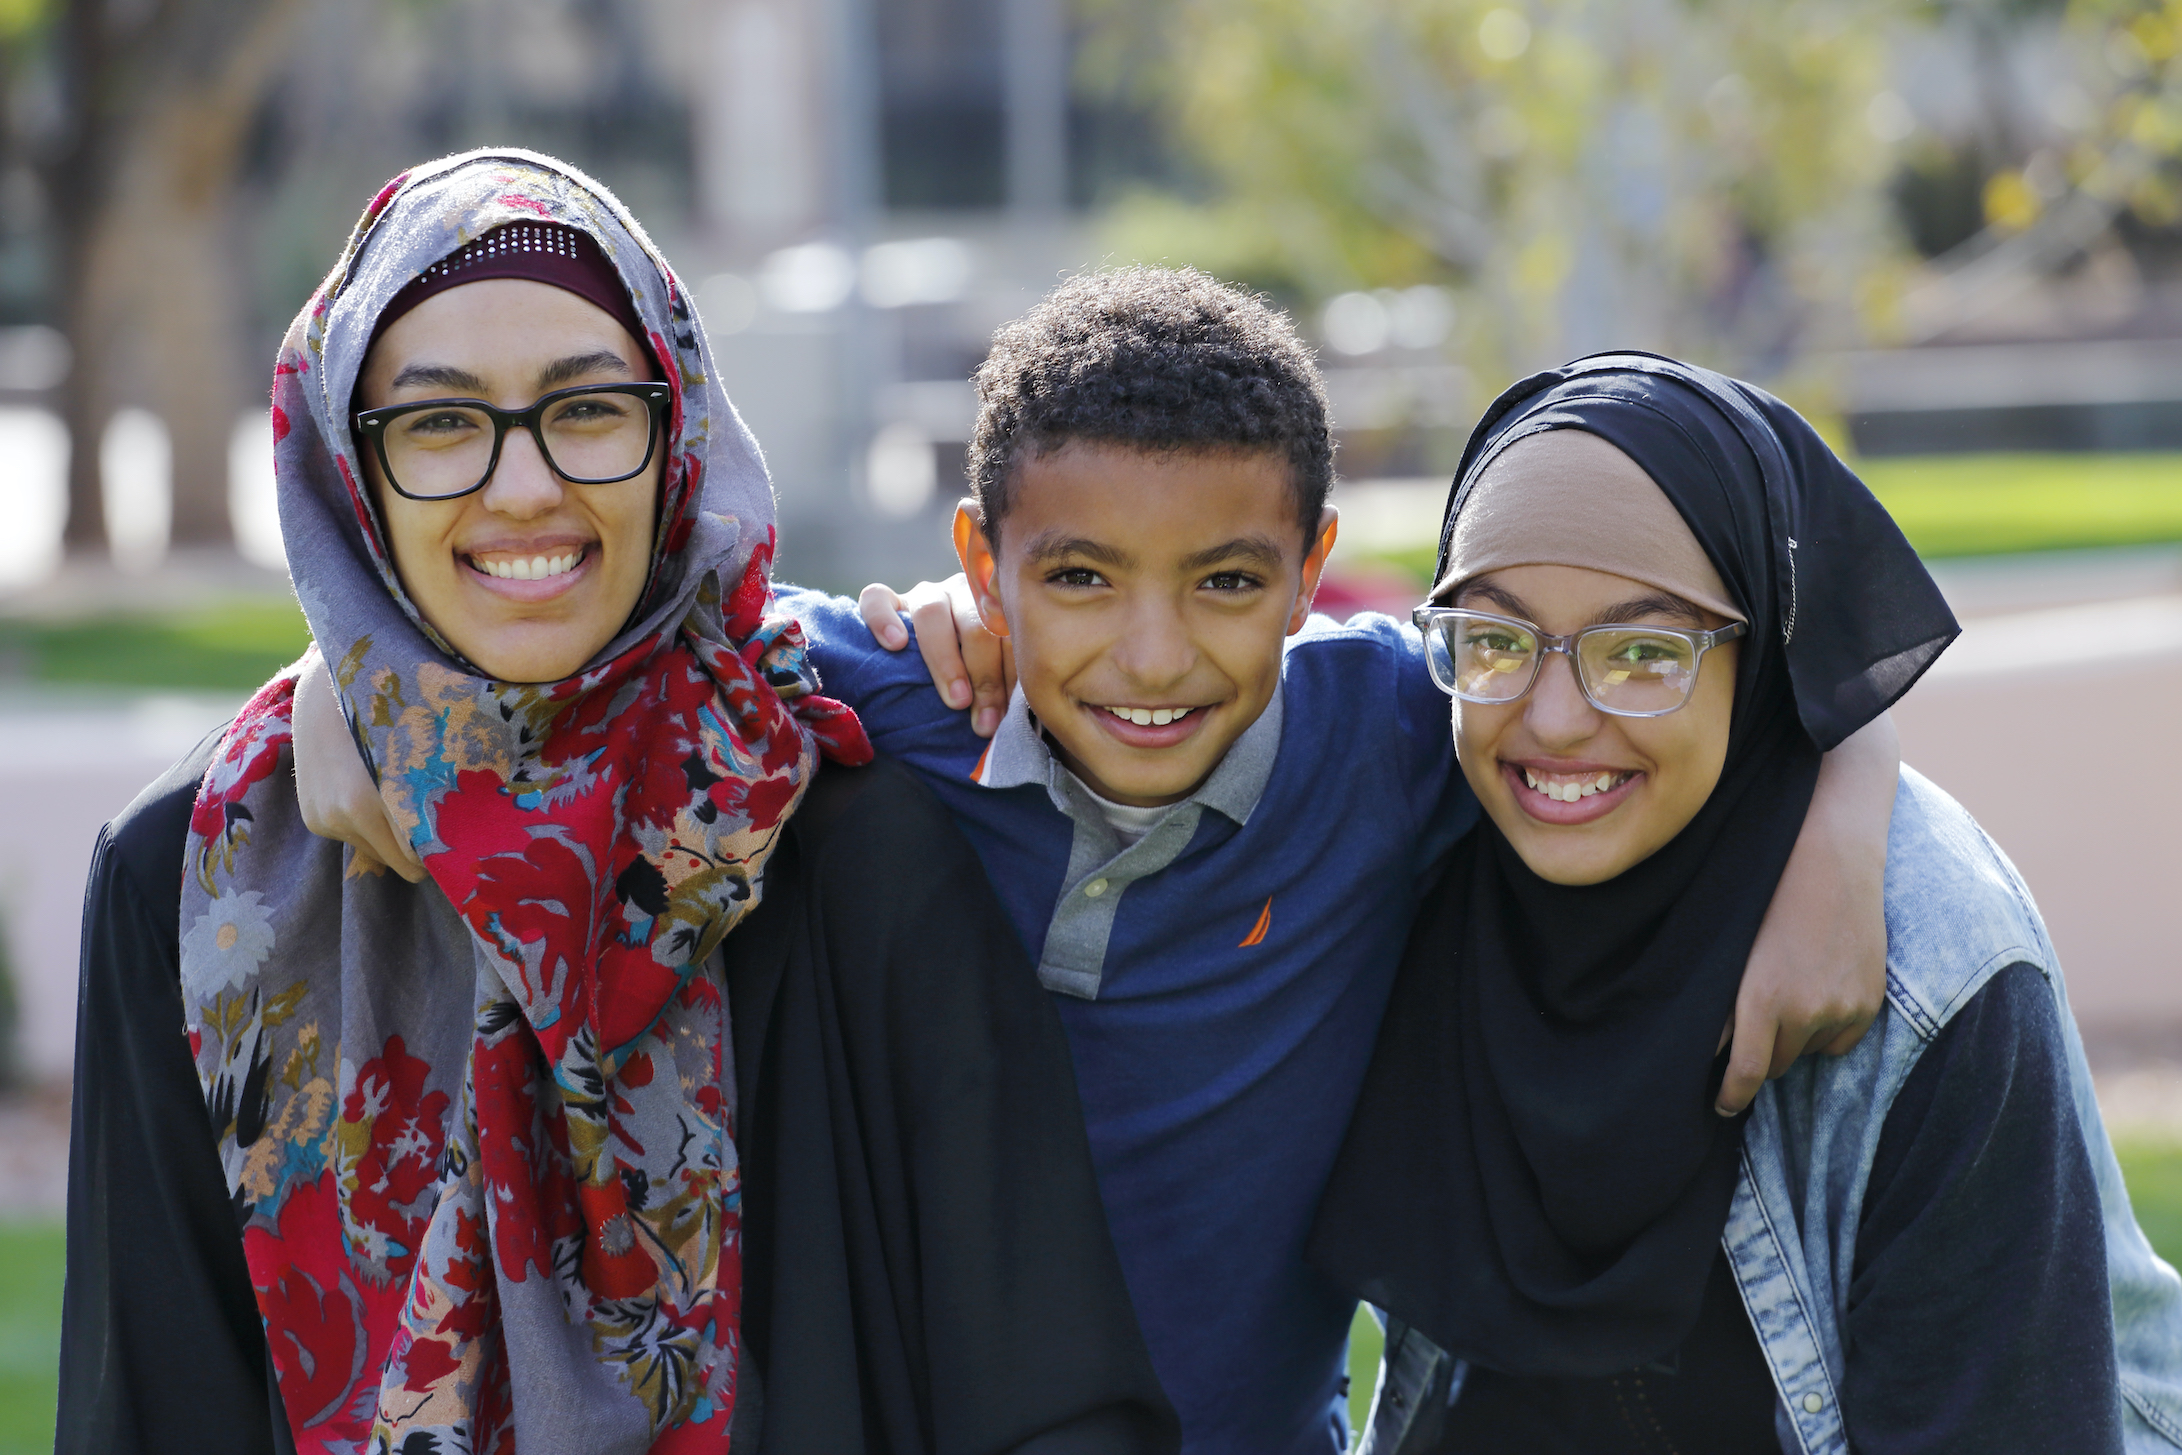 Two girls with glasses, dressed in hijab,  with a young boy, smiling